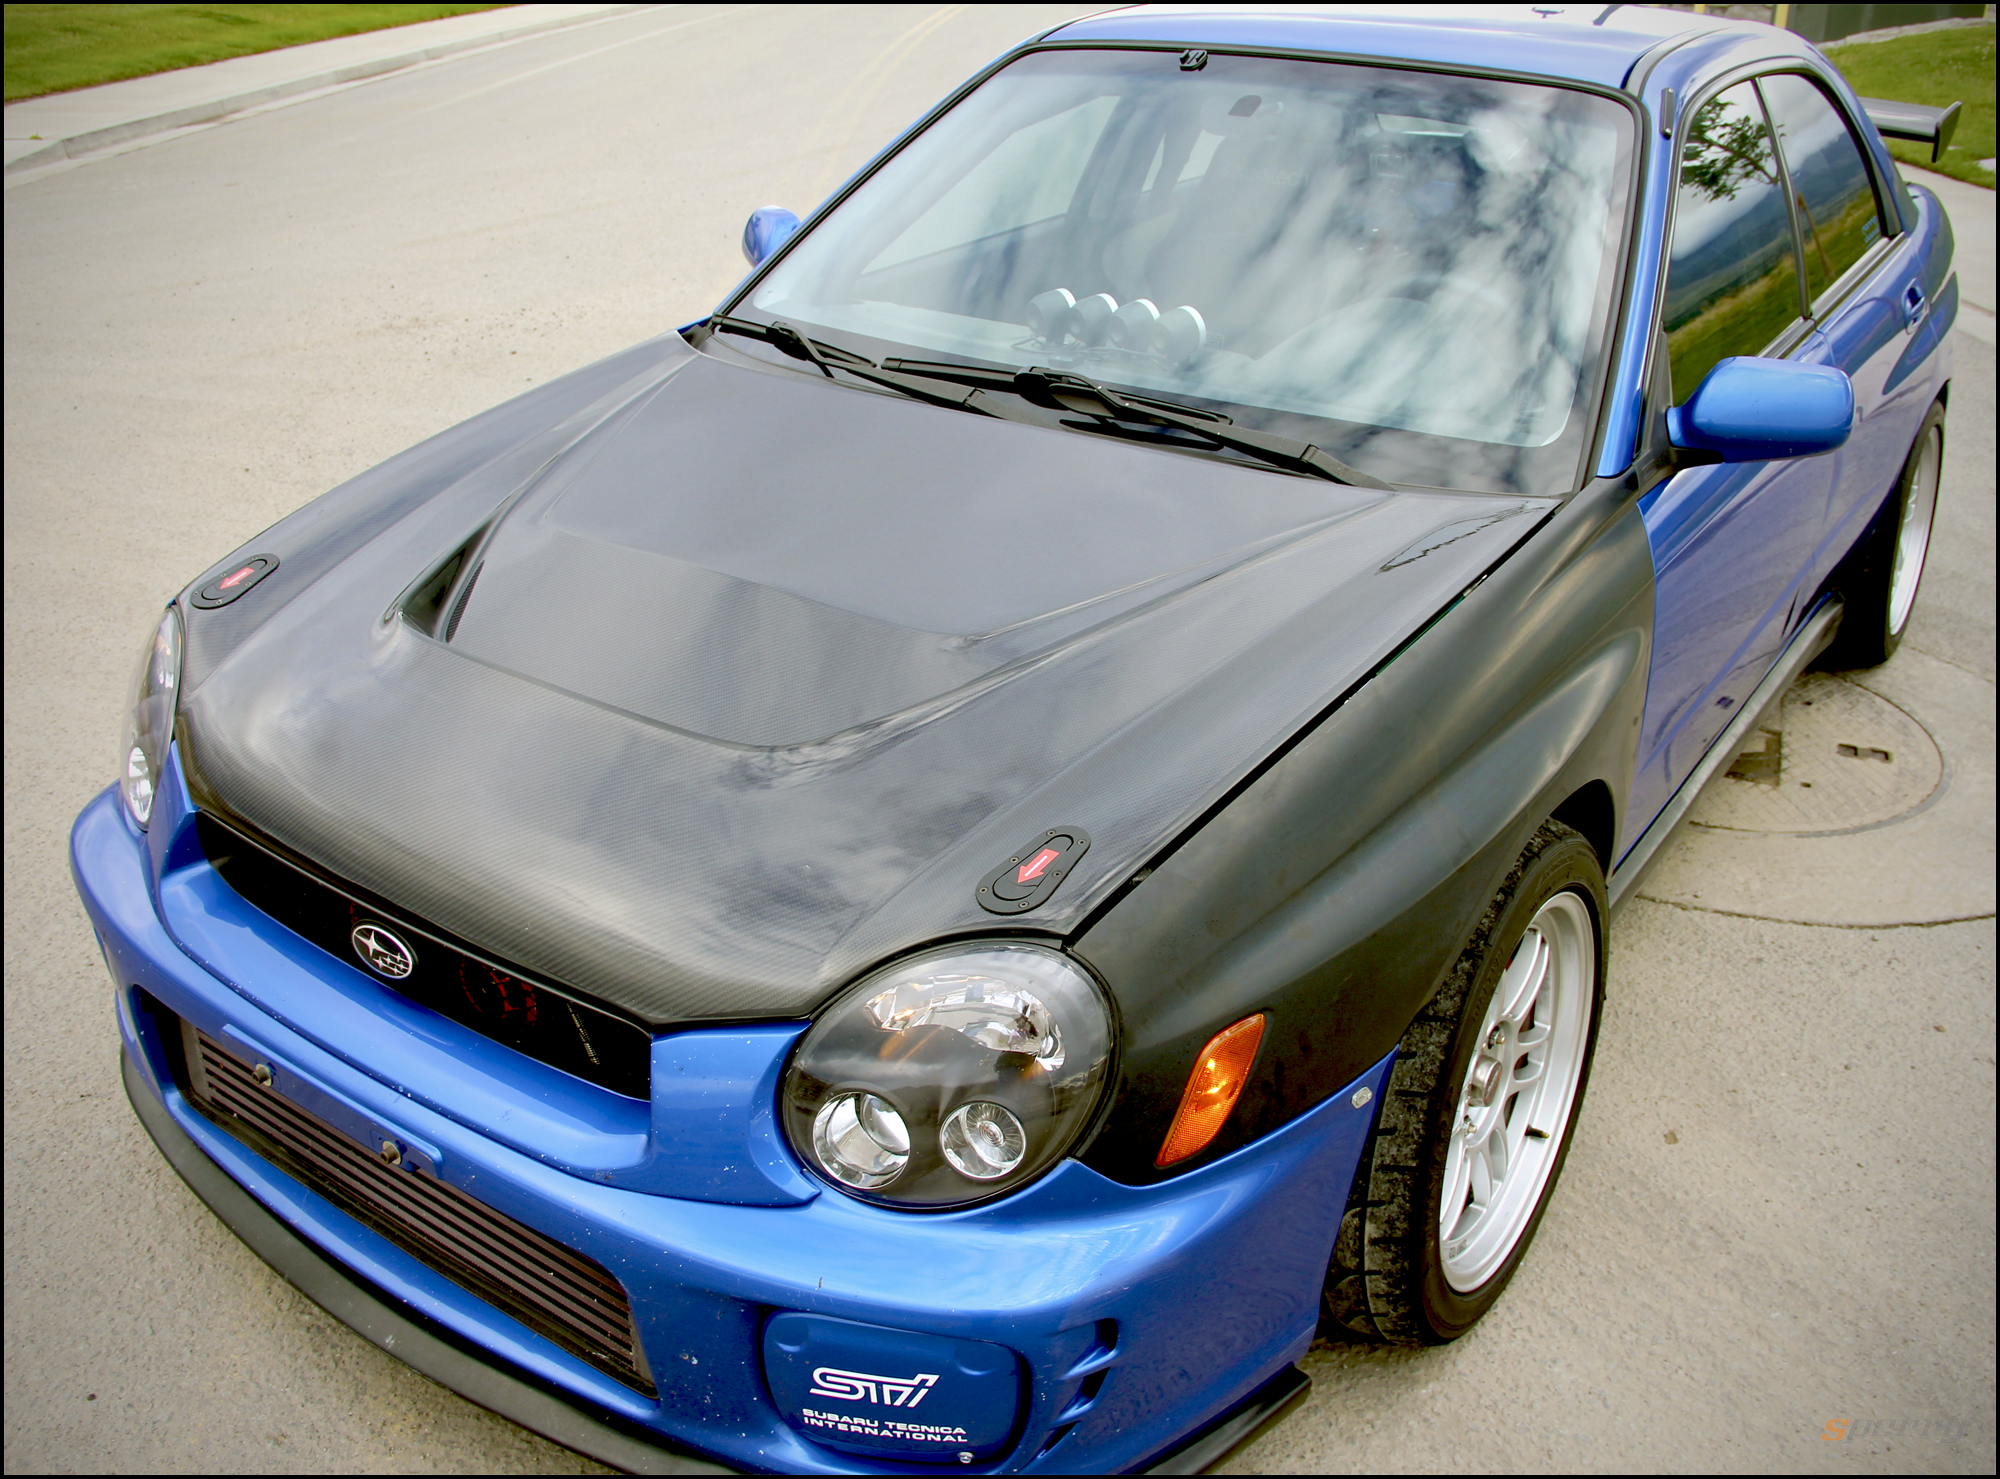 Ongoing project thread: DoinkWRX - Subaru Enthusiasts Car Club of the Sierras